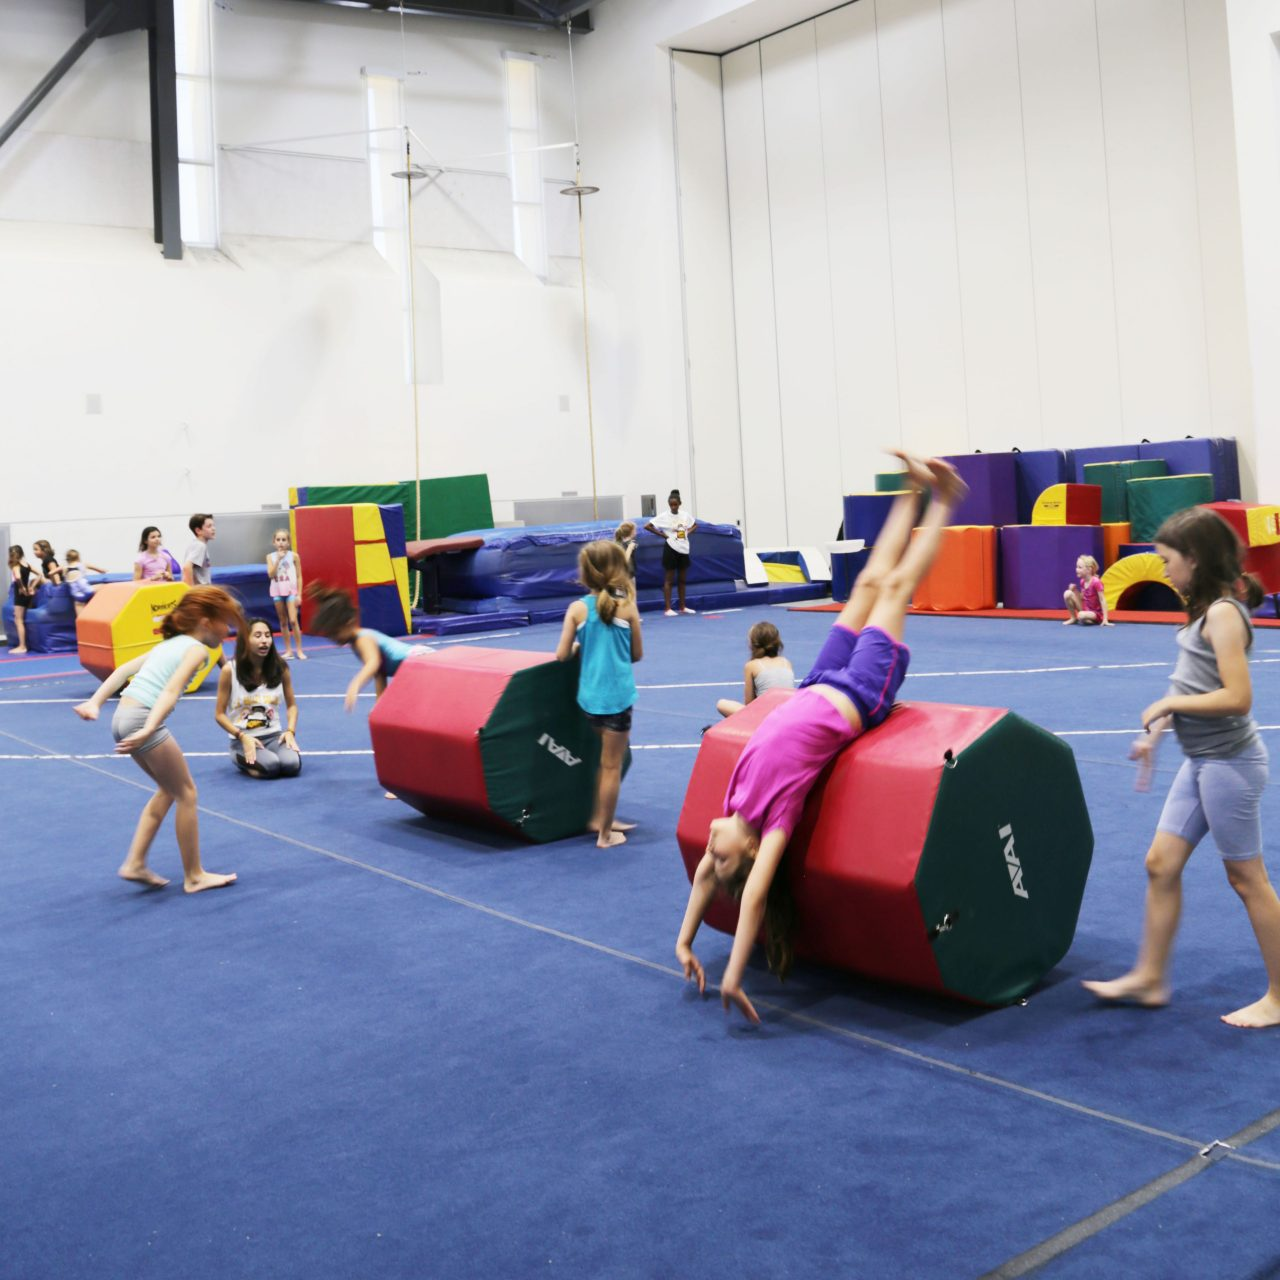 monarch-camps-summer-camp-gymnastics-camp-children-tumbling-on-gymnastic-floor-1280x1280.jpg